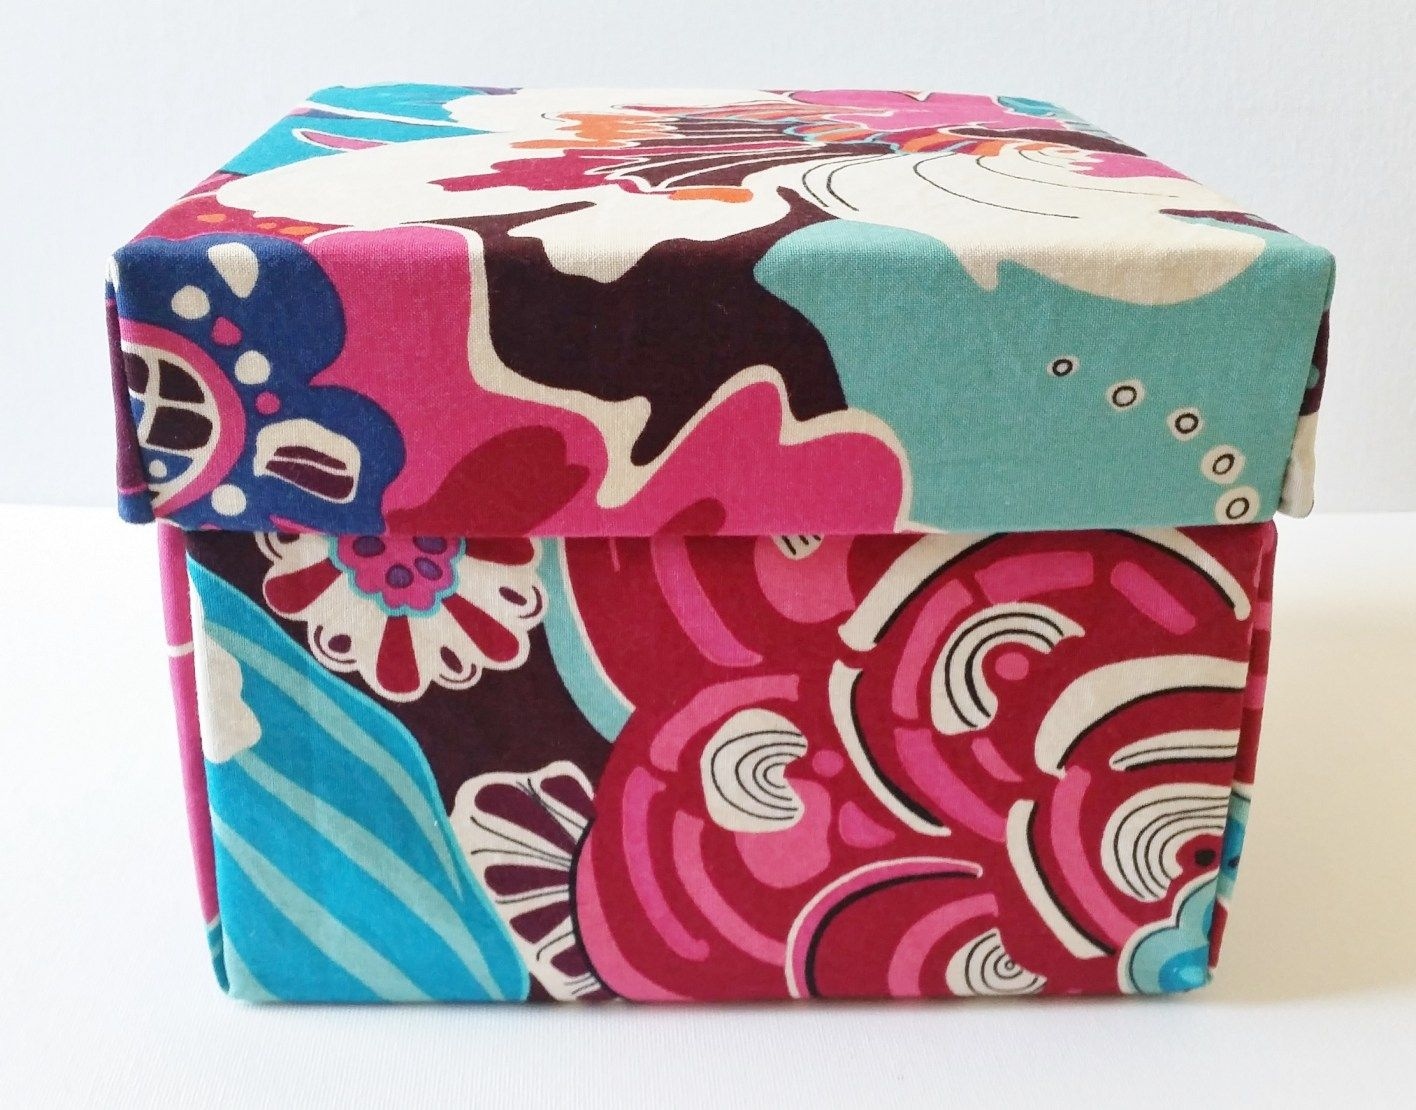 DIY Fabric Box With Lid Tutorial in 2020 Fabric boxes